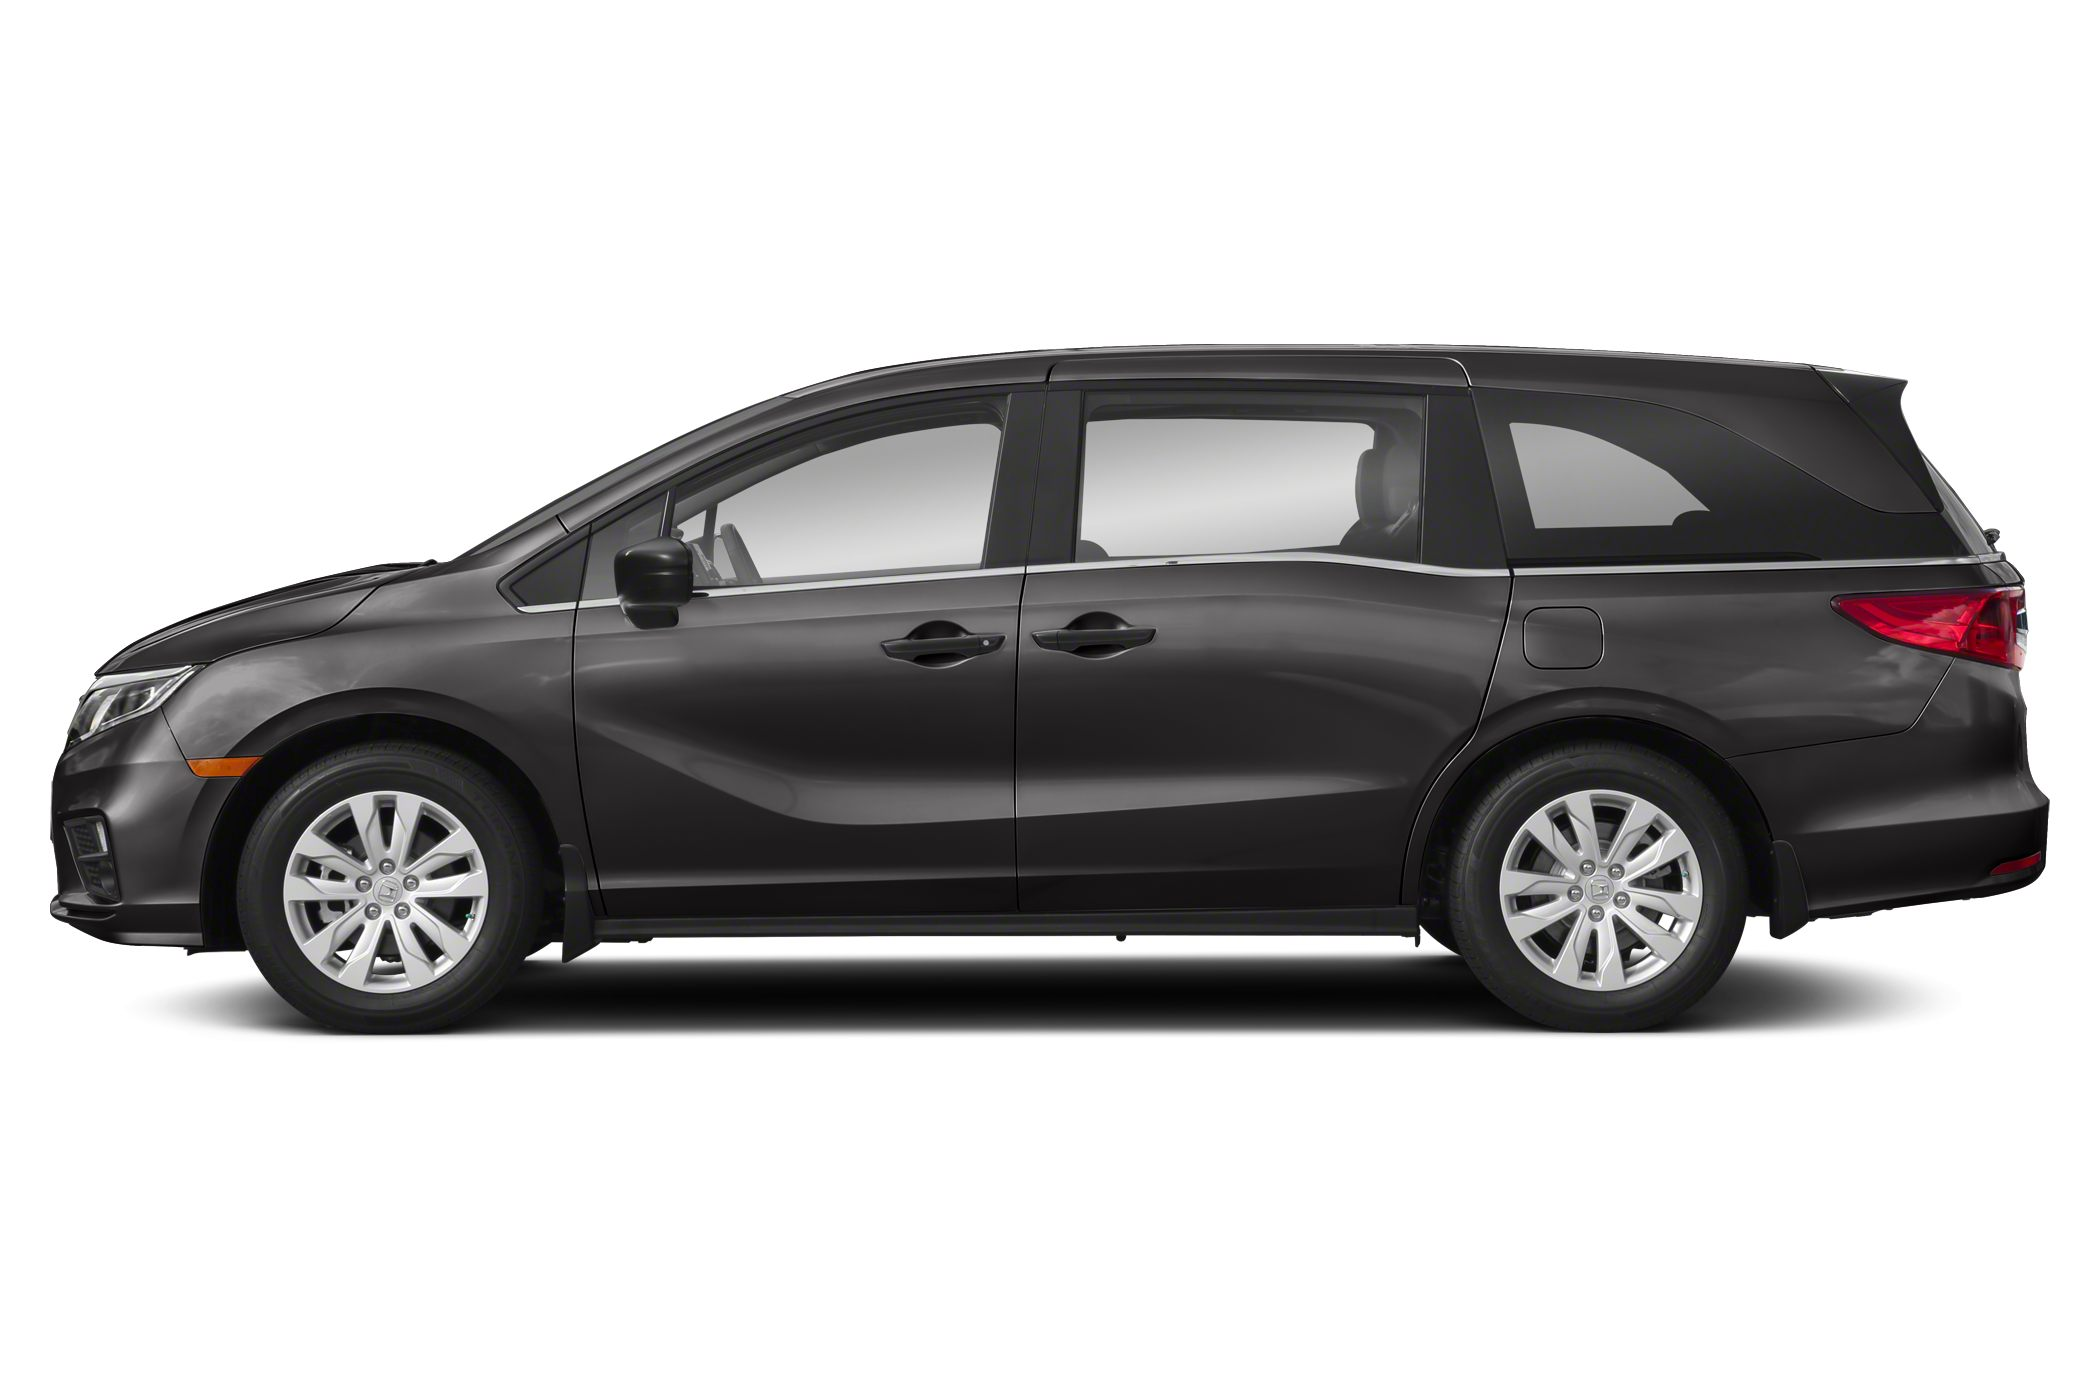 2019 Honda Odyssey Deals Prices Incentives Leases Overview